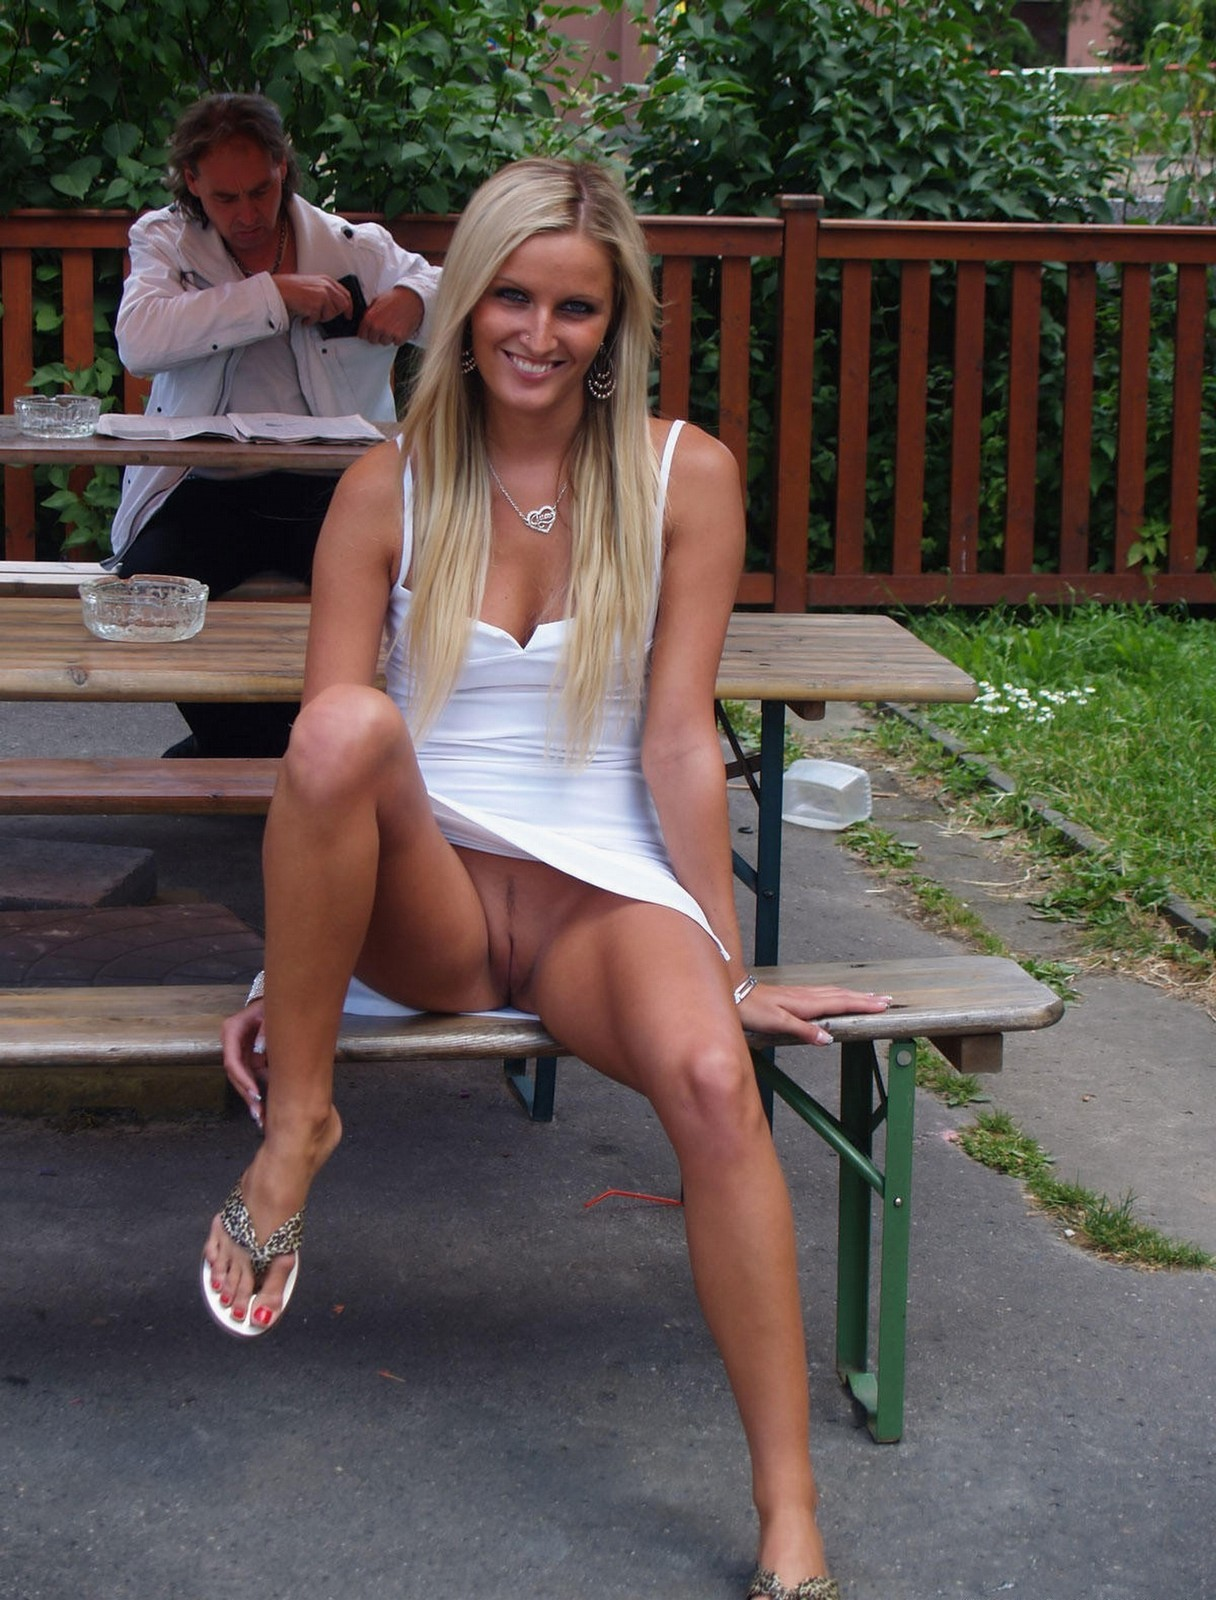 videos of girls losing there virginity